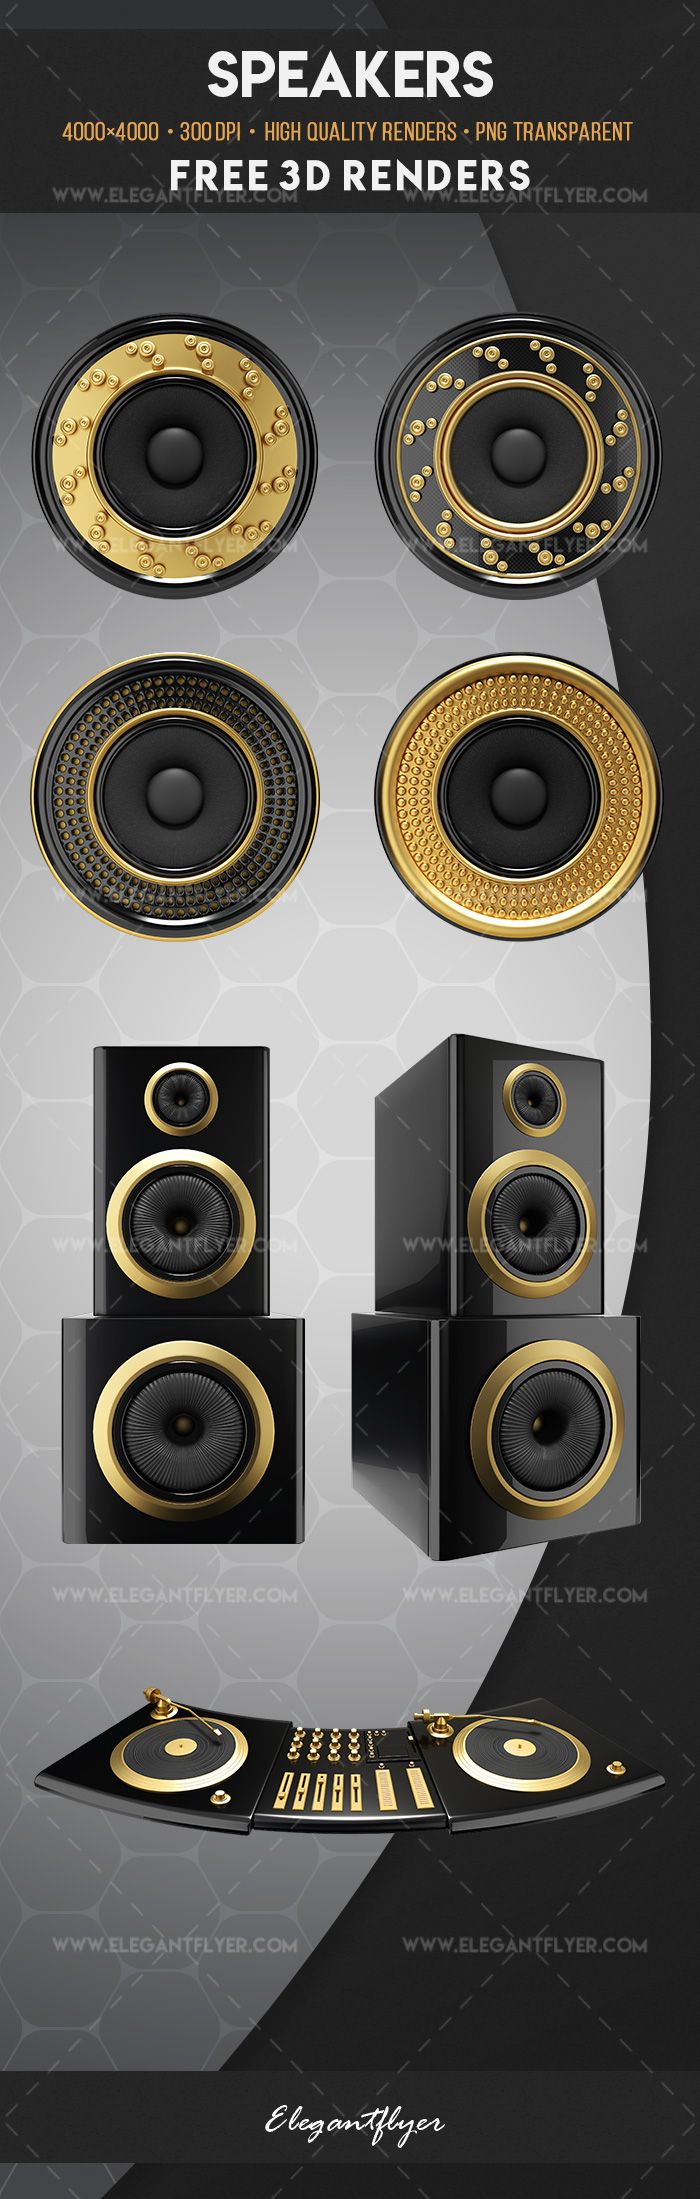 Speakers – Free 3d Render Templates